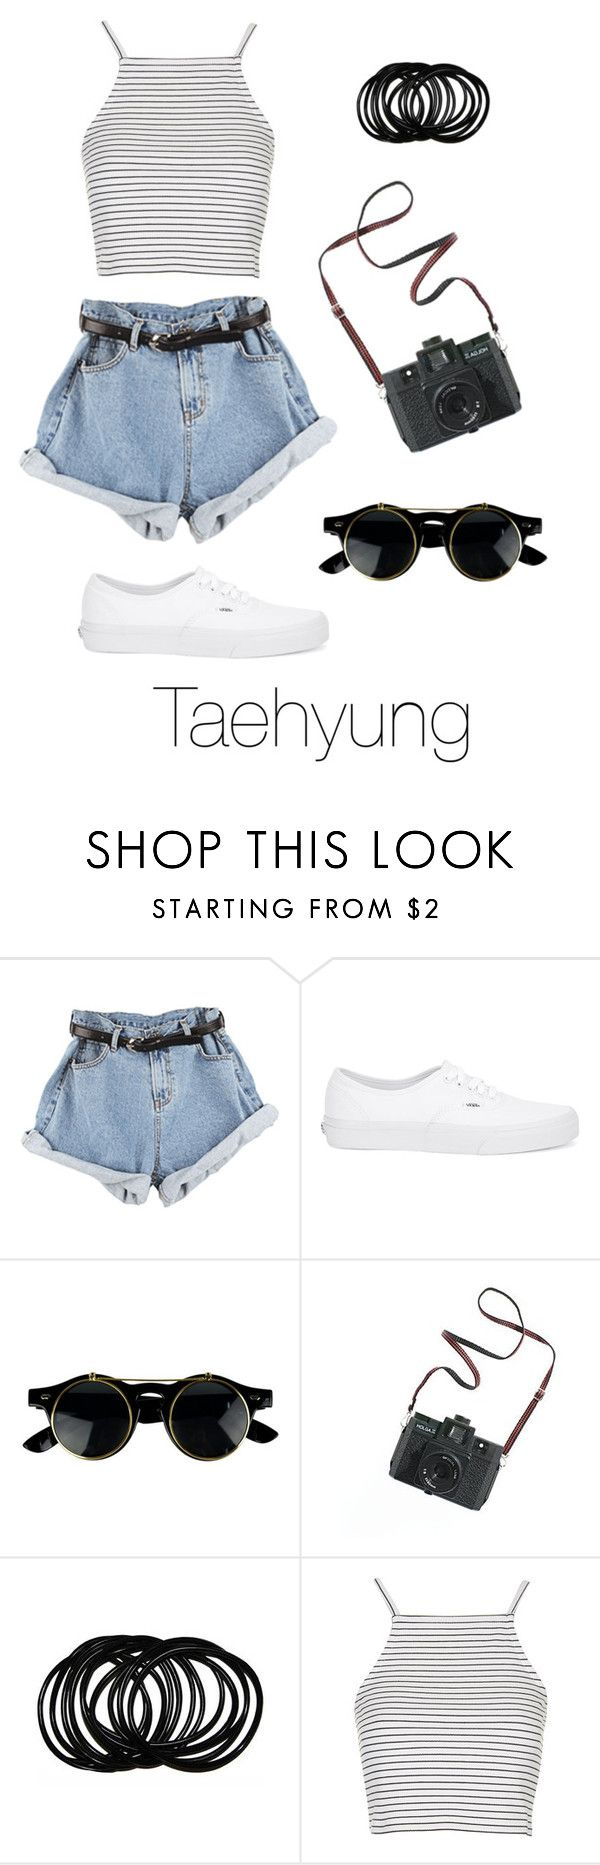 """Amusement Park with Taehyung"" by btsoutfits ❤ liked on Polyvore featuring Vans, Madewell and Topshop"